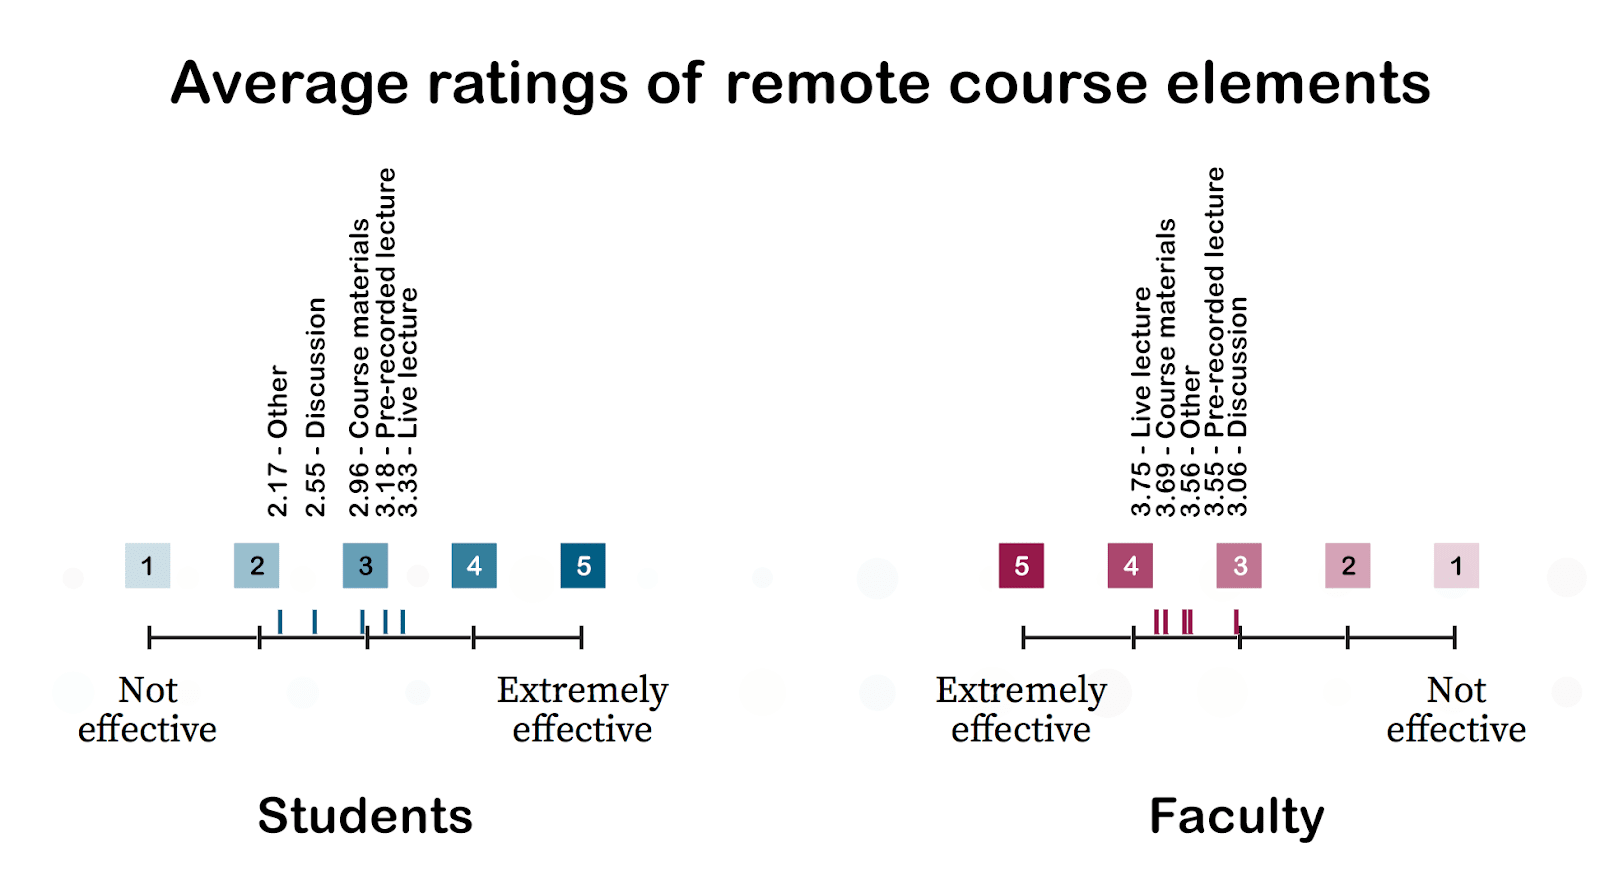 on average, faculty rated remote course elements more highly than students